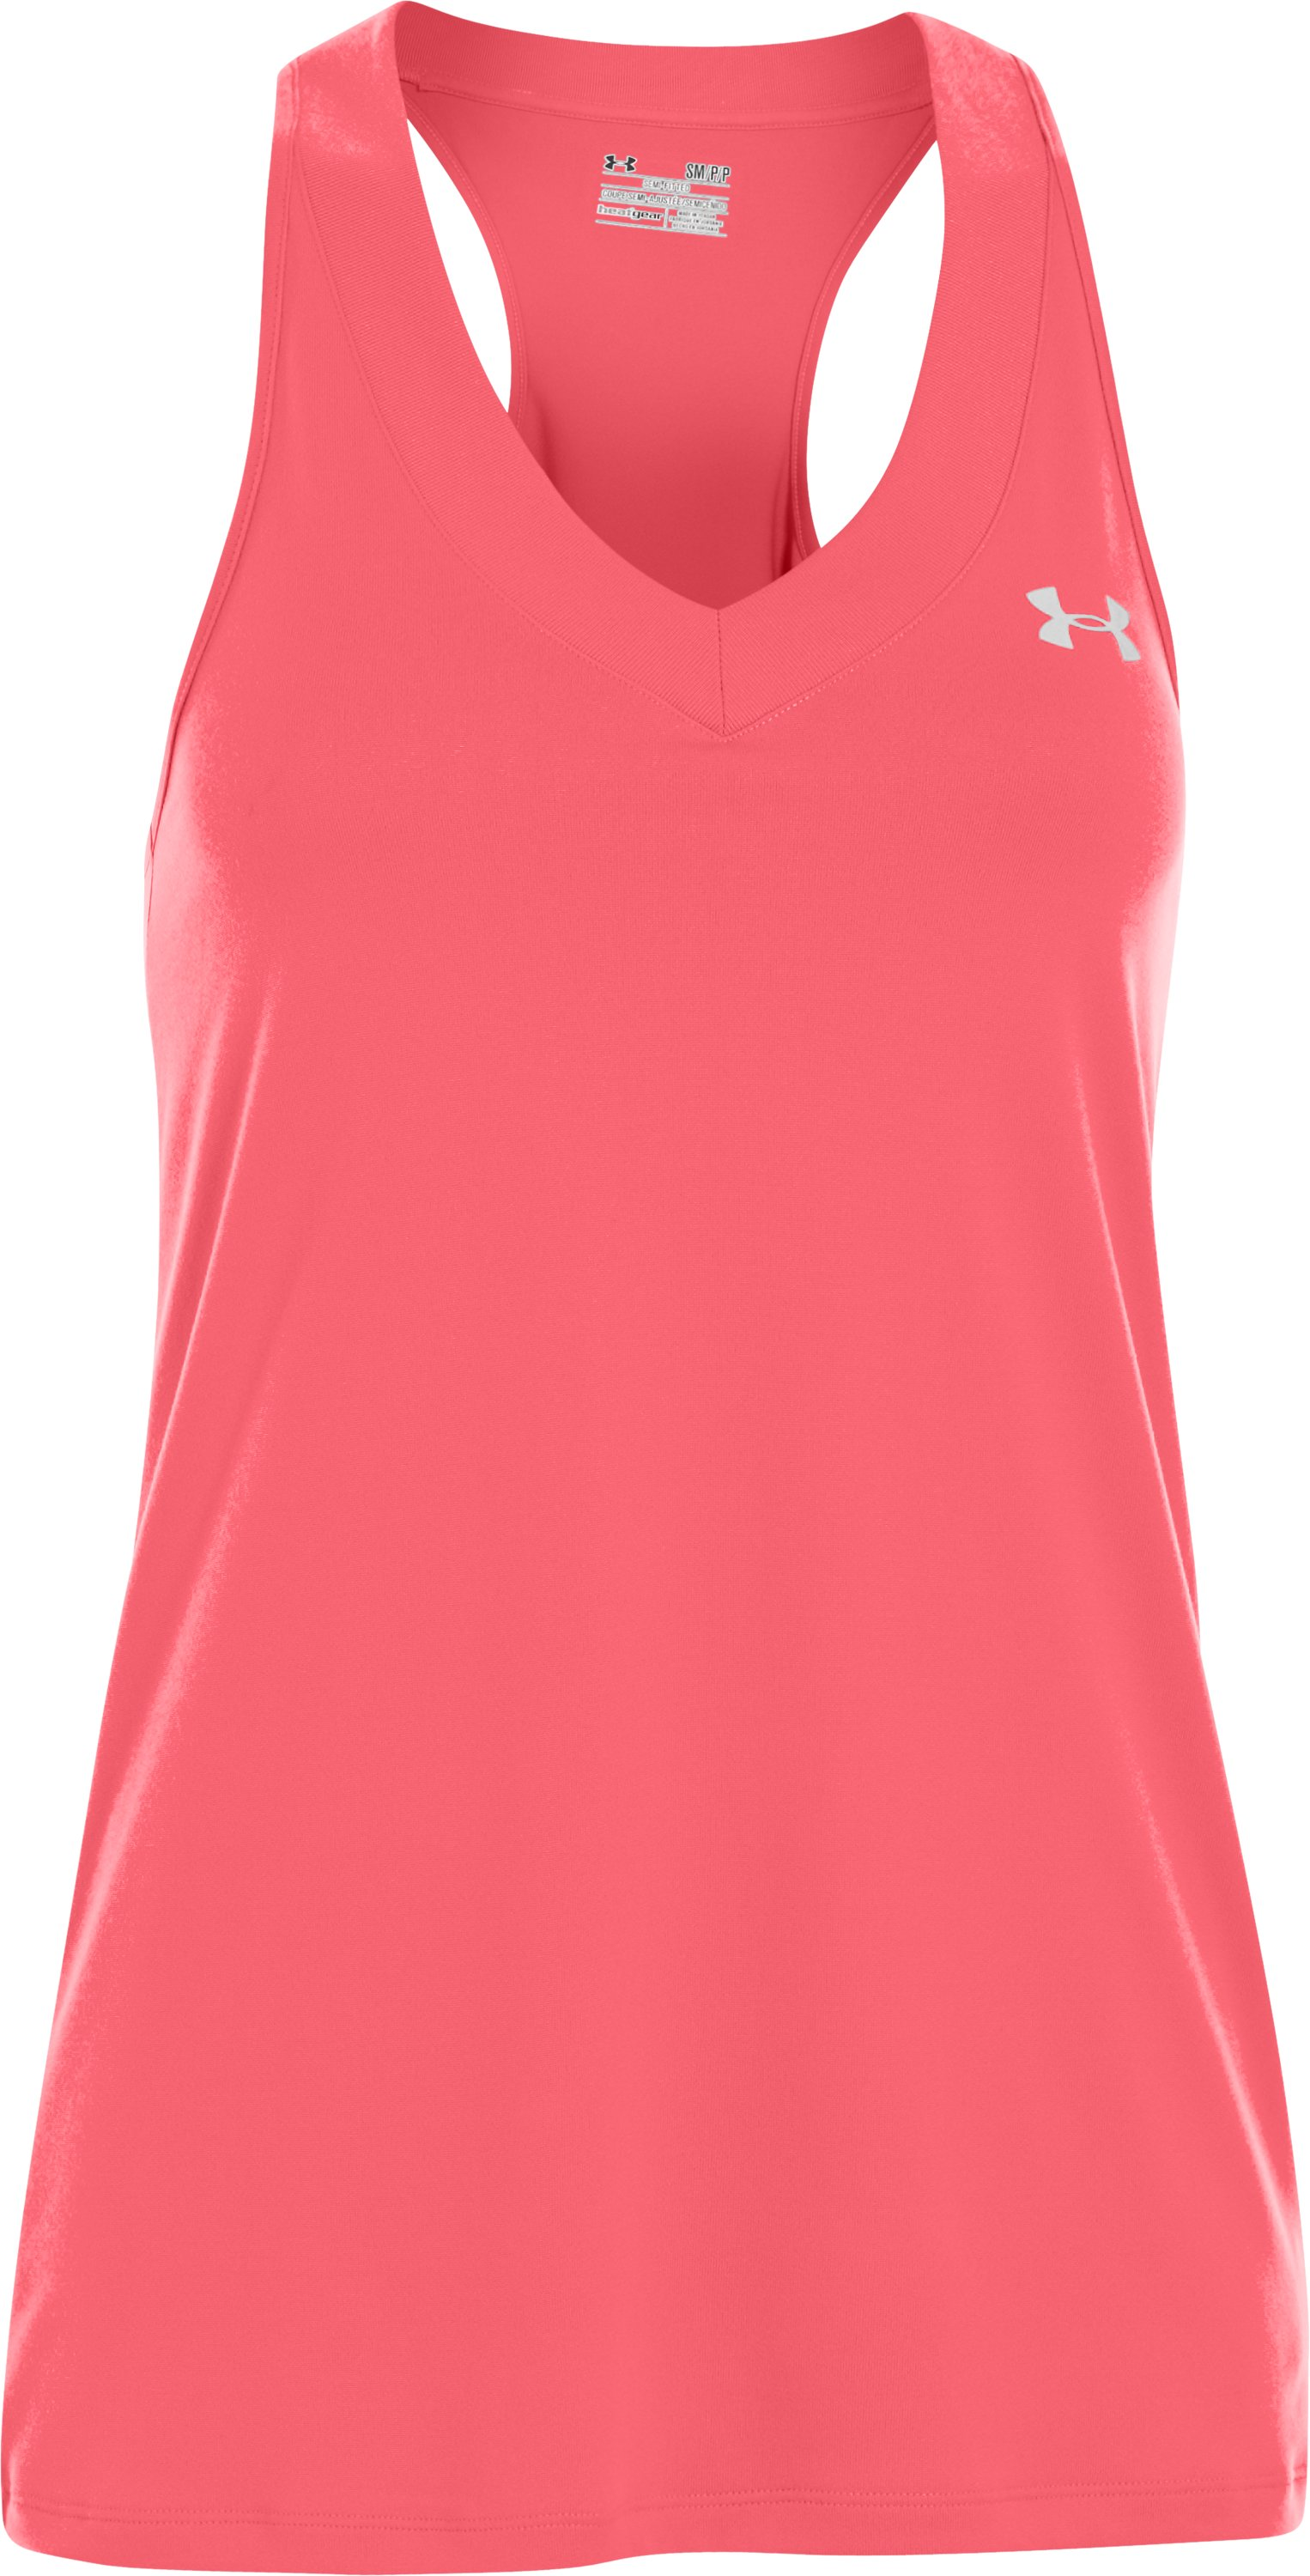 Women's UA Tech™ Sleeveless Tank, BRILLIANCE